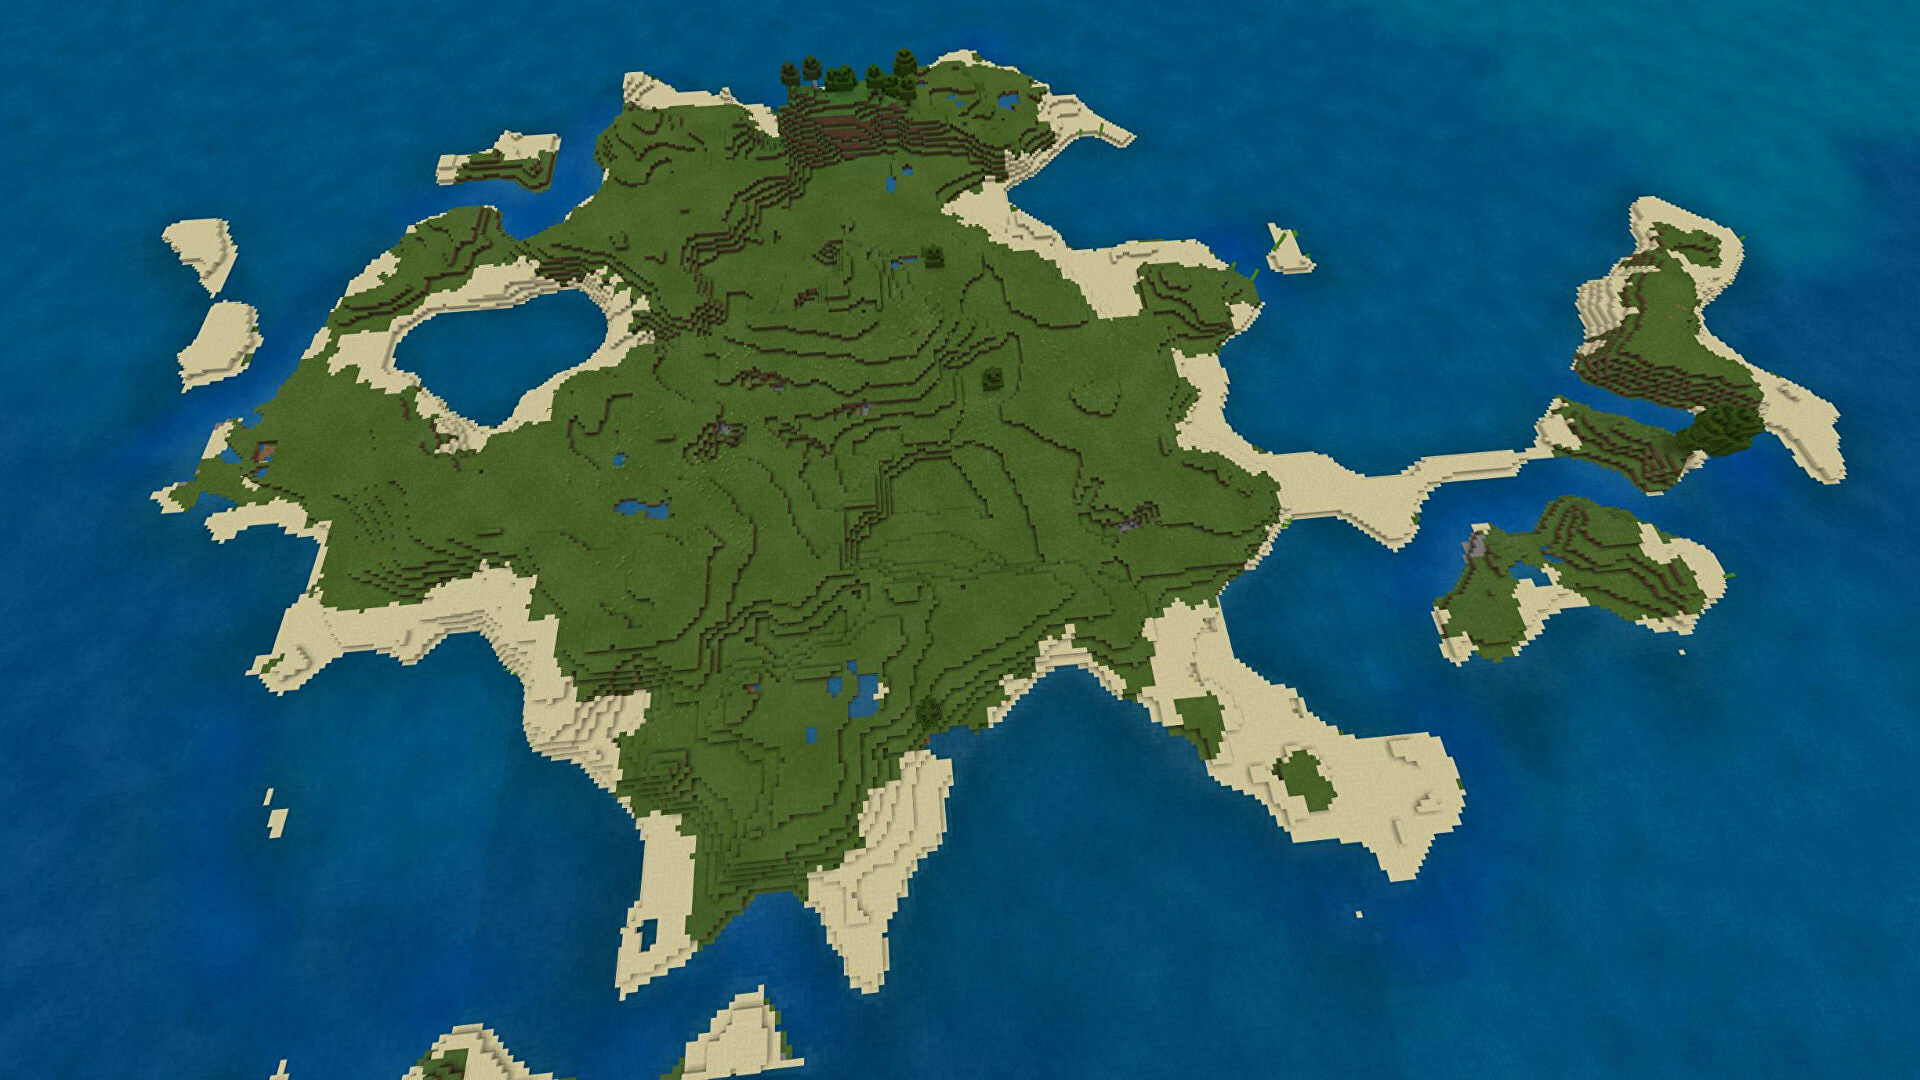 A Minecraft Bedrock screenshot of a new world created with the seed -1567484700.